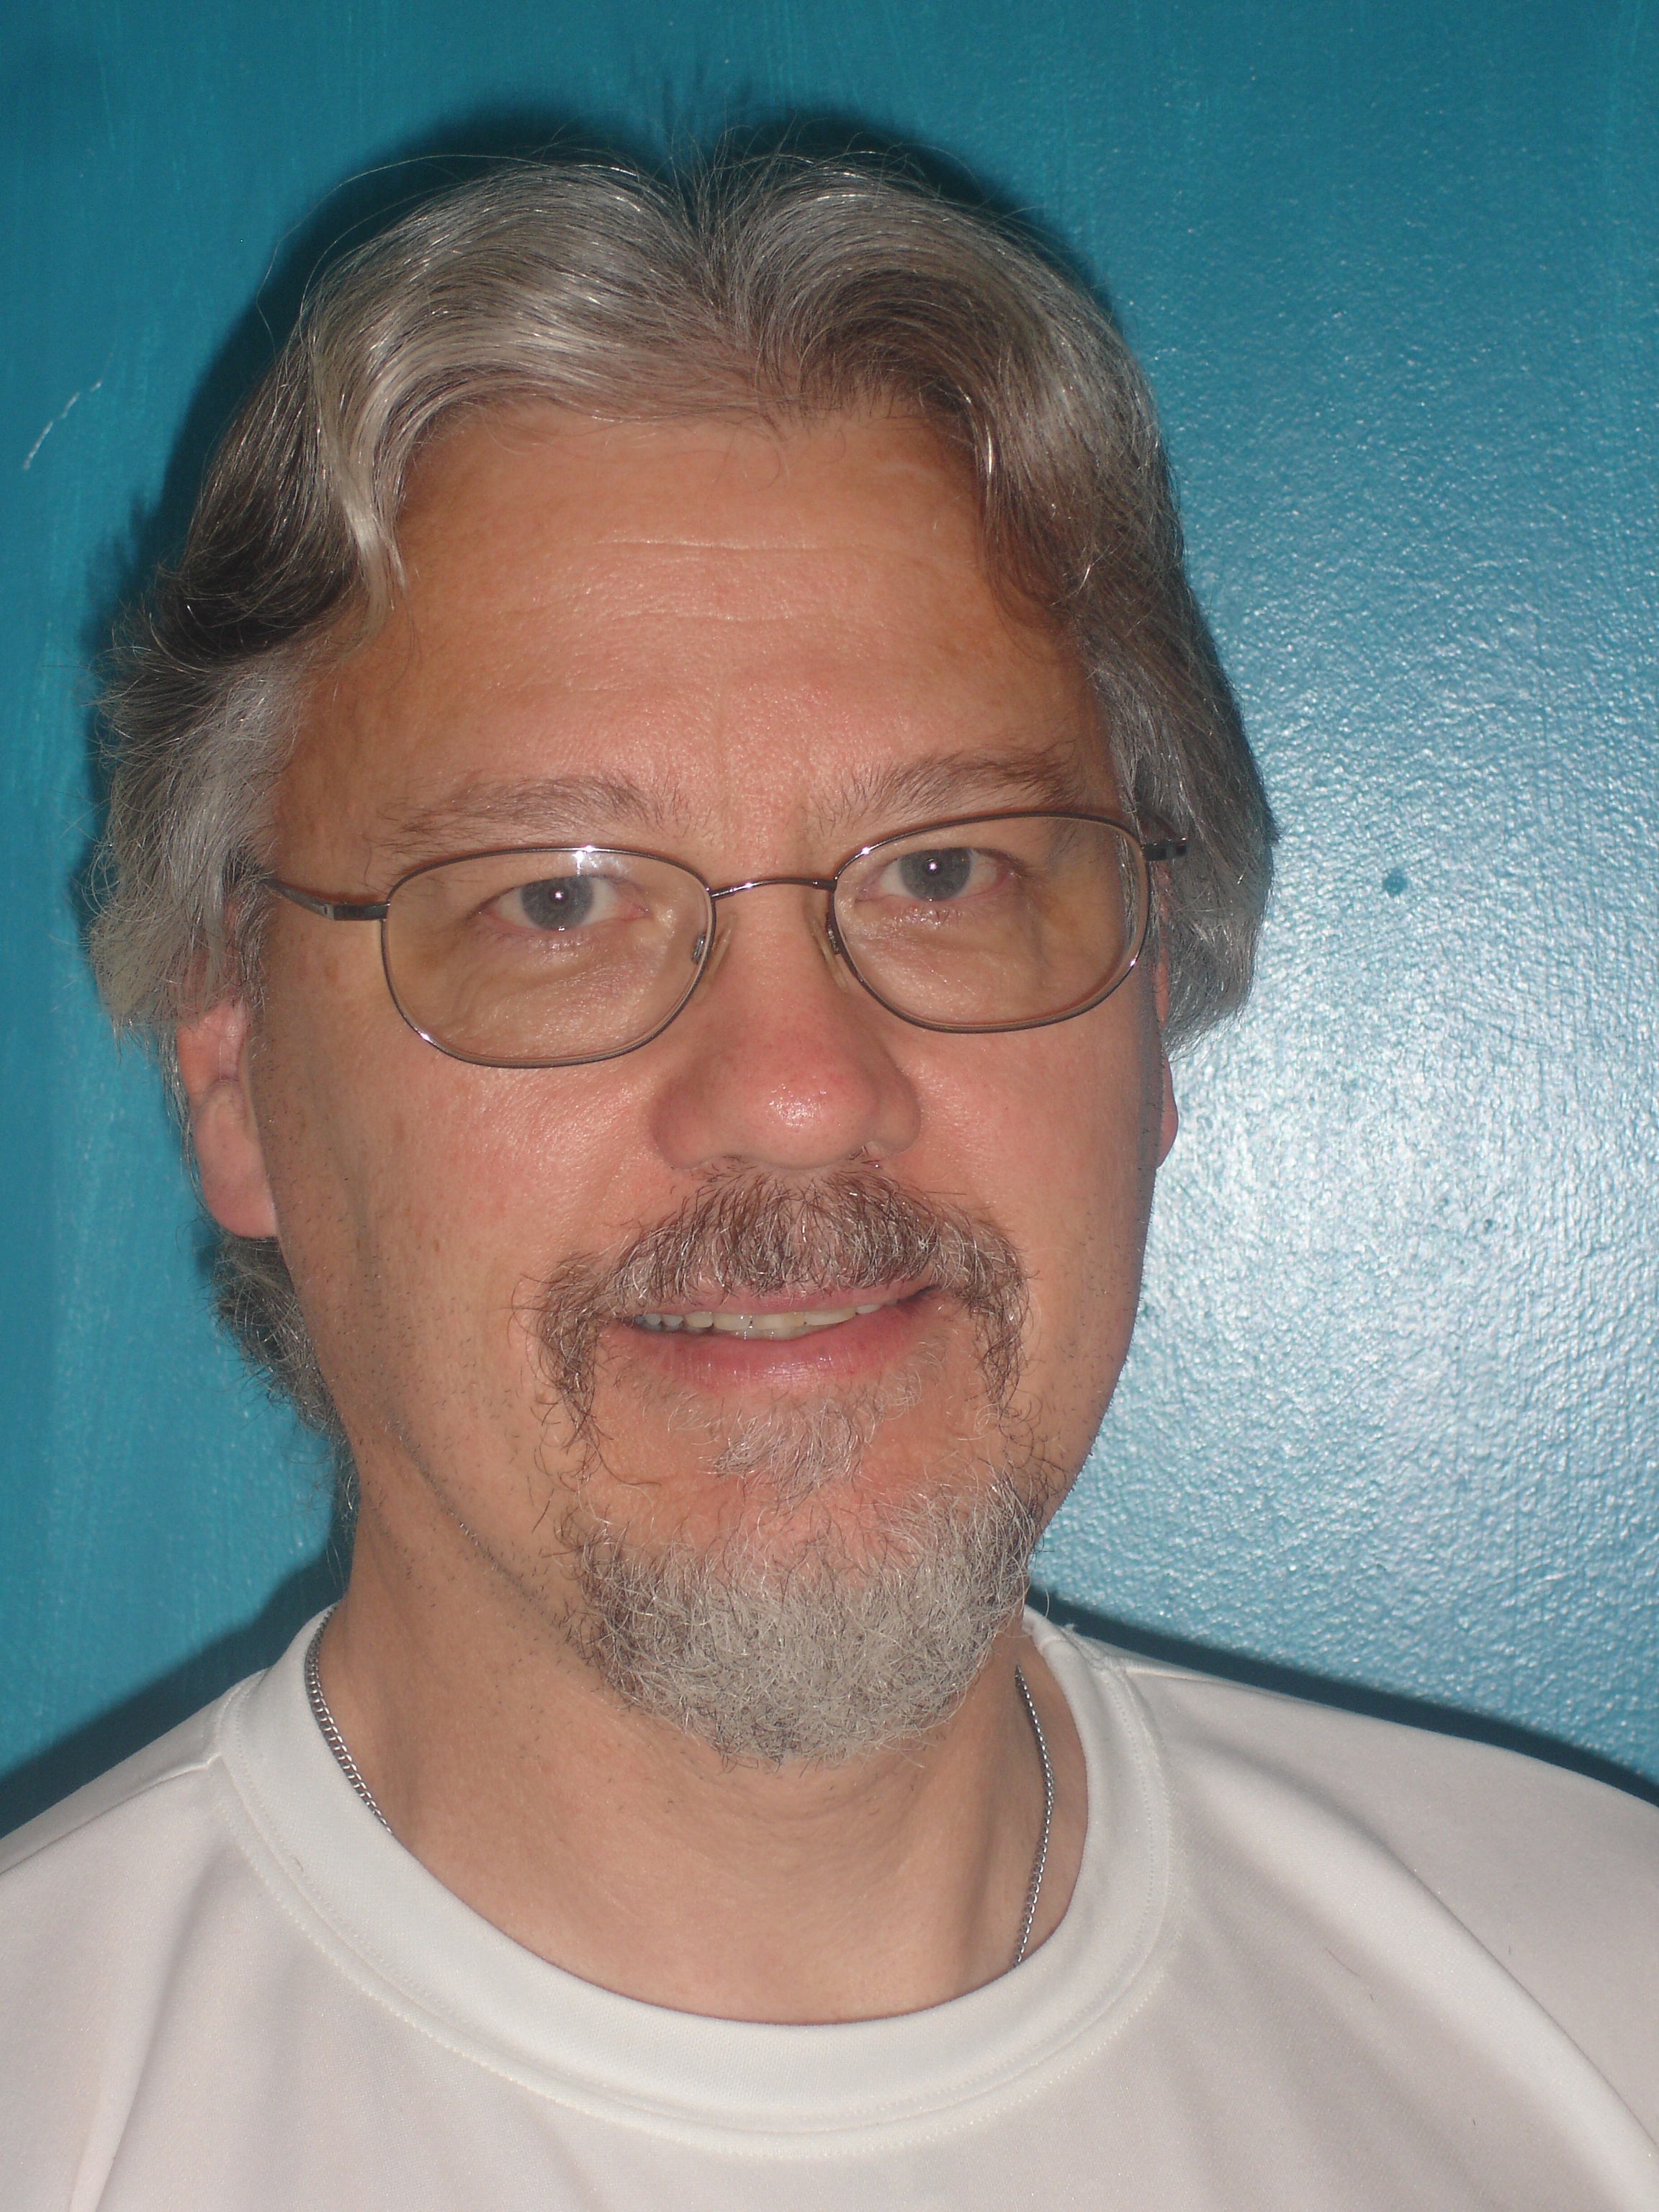 "David Metcalf - Artistic Director (Cokato, MN)  Dave Metcalf is a retired teacher of English, Speech and Theater who worked at Howard Lake-Waverly-Winsted H.S. for nearly 40 years. He has directed over 150 productions for high school and community theater in various area communities.  In the past three years he has directed ""Les Miserables"" and ""Fiddler on the Roof"" for Dassel-Cokato Community Theater. He has also led FungusAmongus Players to two consecutive performances at the AACT National Festival, directing ""The Romancers"" (2015) and ""The Voice of the Prairie"" (2017), which both ranked among the top 12 community theater productions in America."